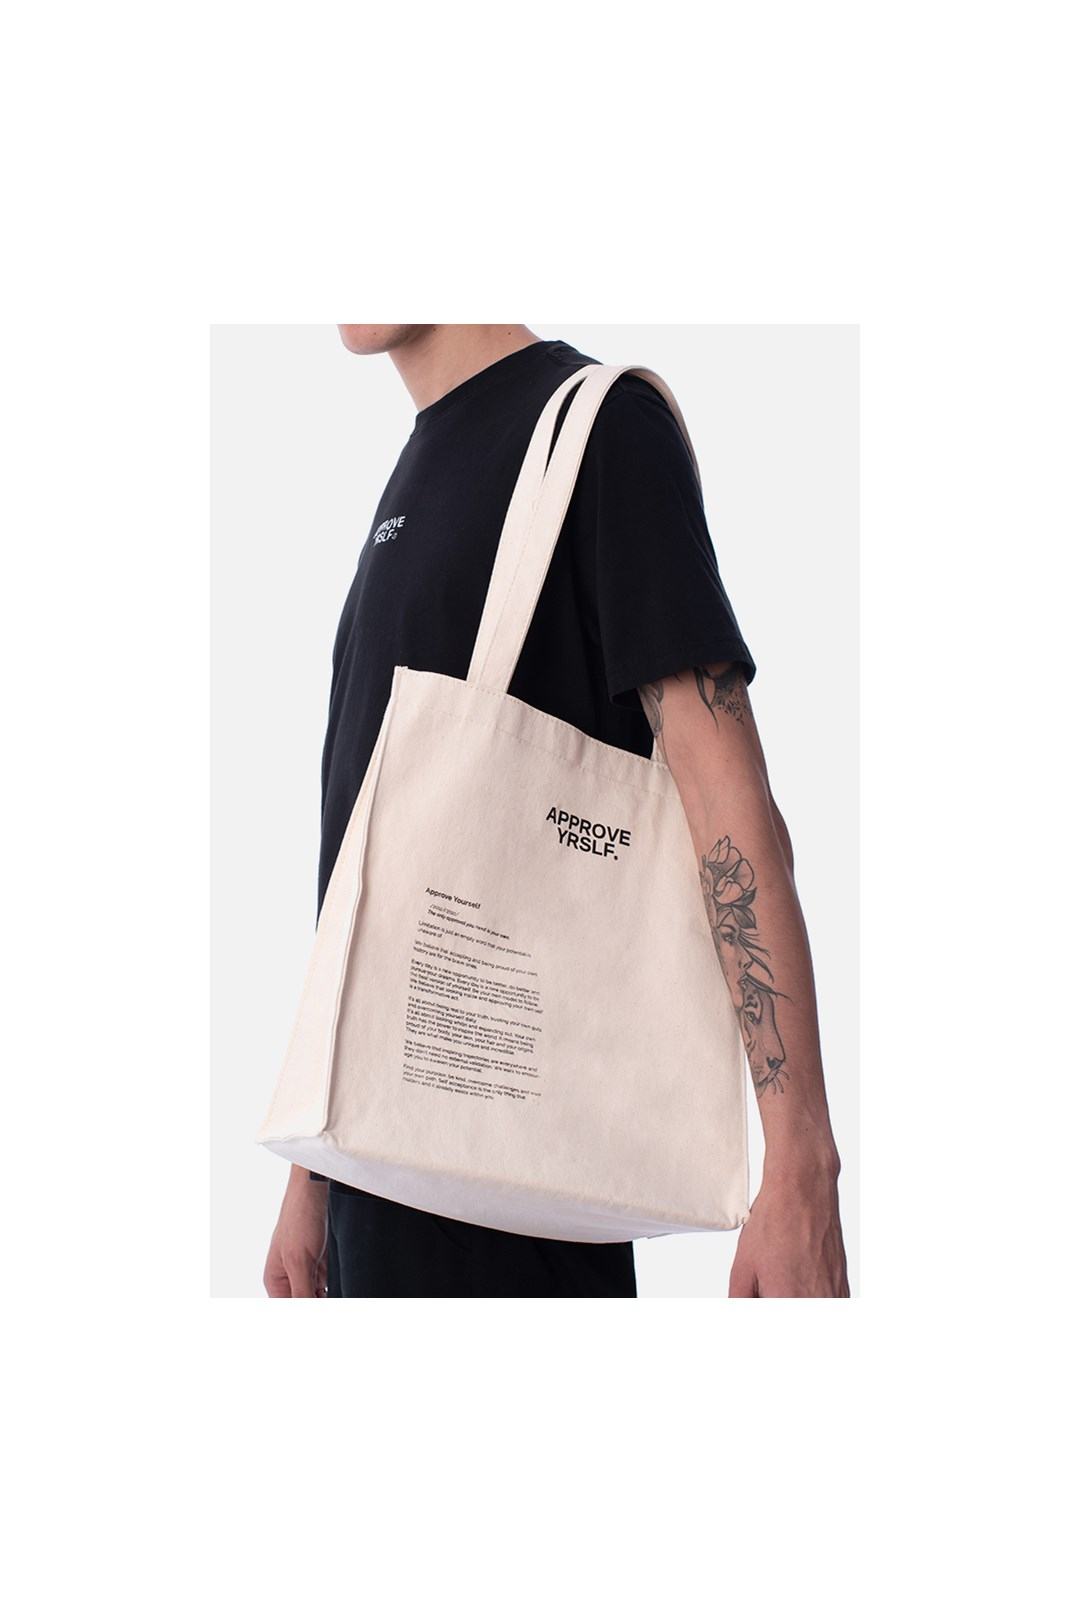 Ecobag Approve Yrslf Off White